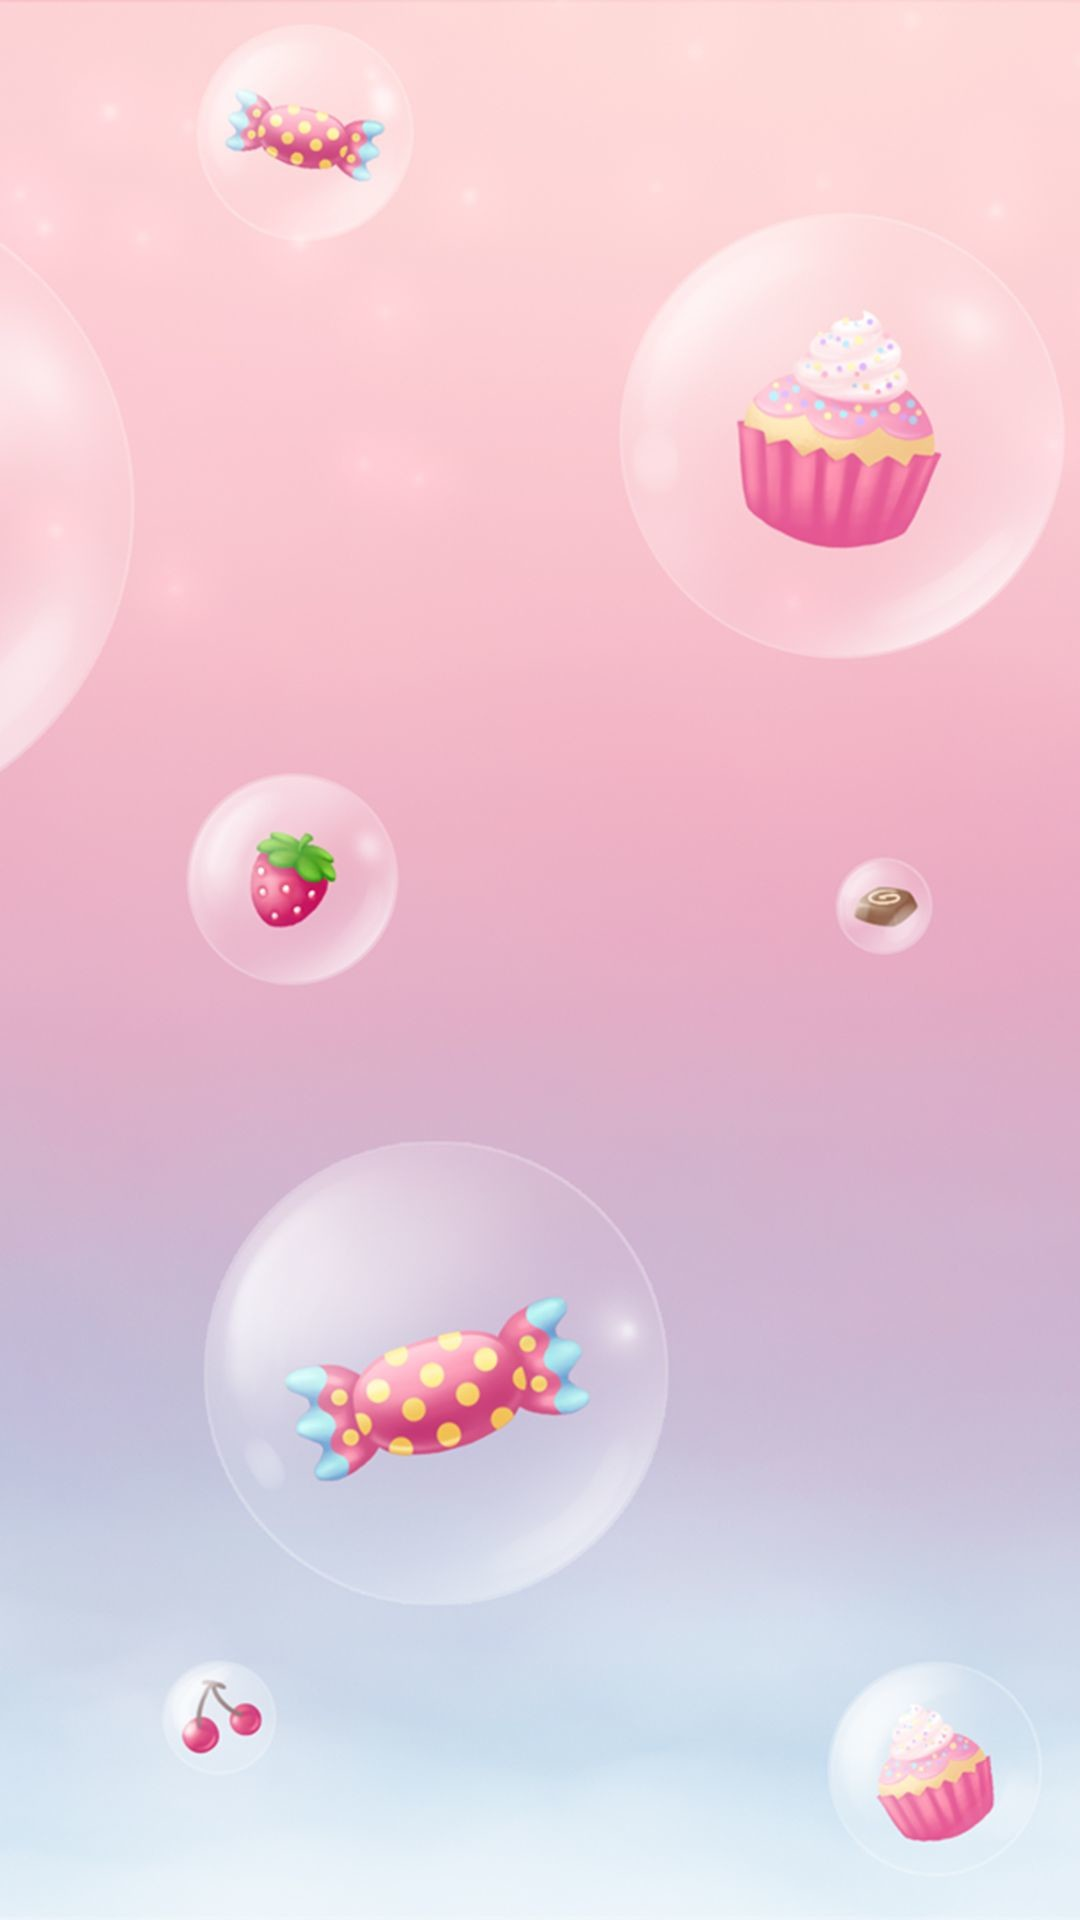 Cool girly wallpapers for iphone 70 images 1080x1920 girly cute iphone6s wallpaper cupcakes voltagebd Choice Image